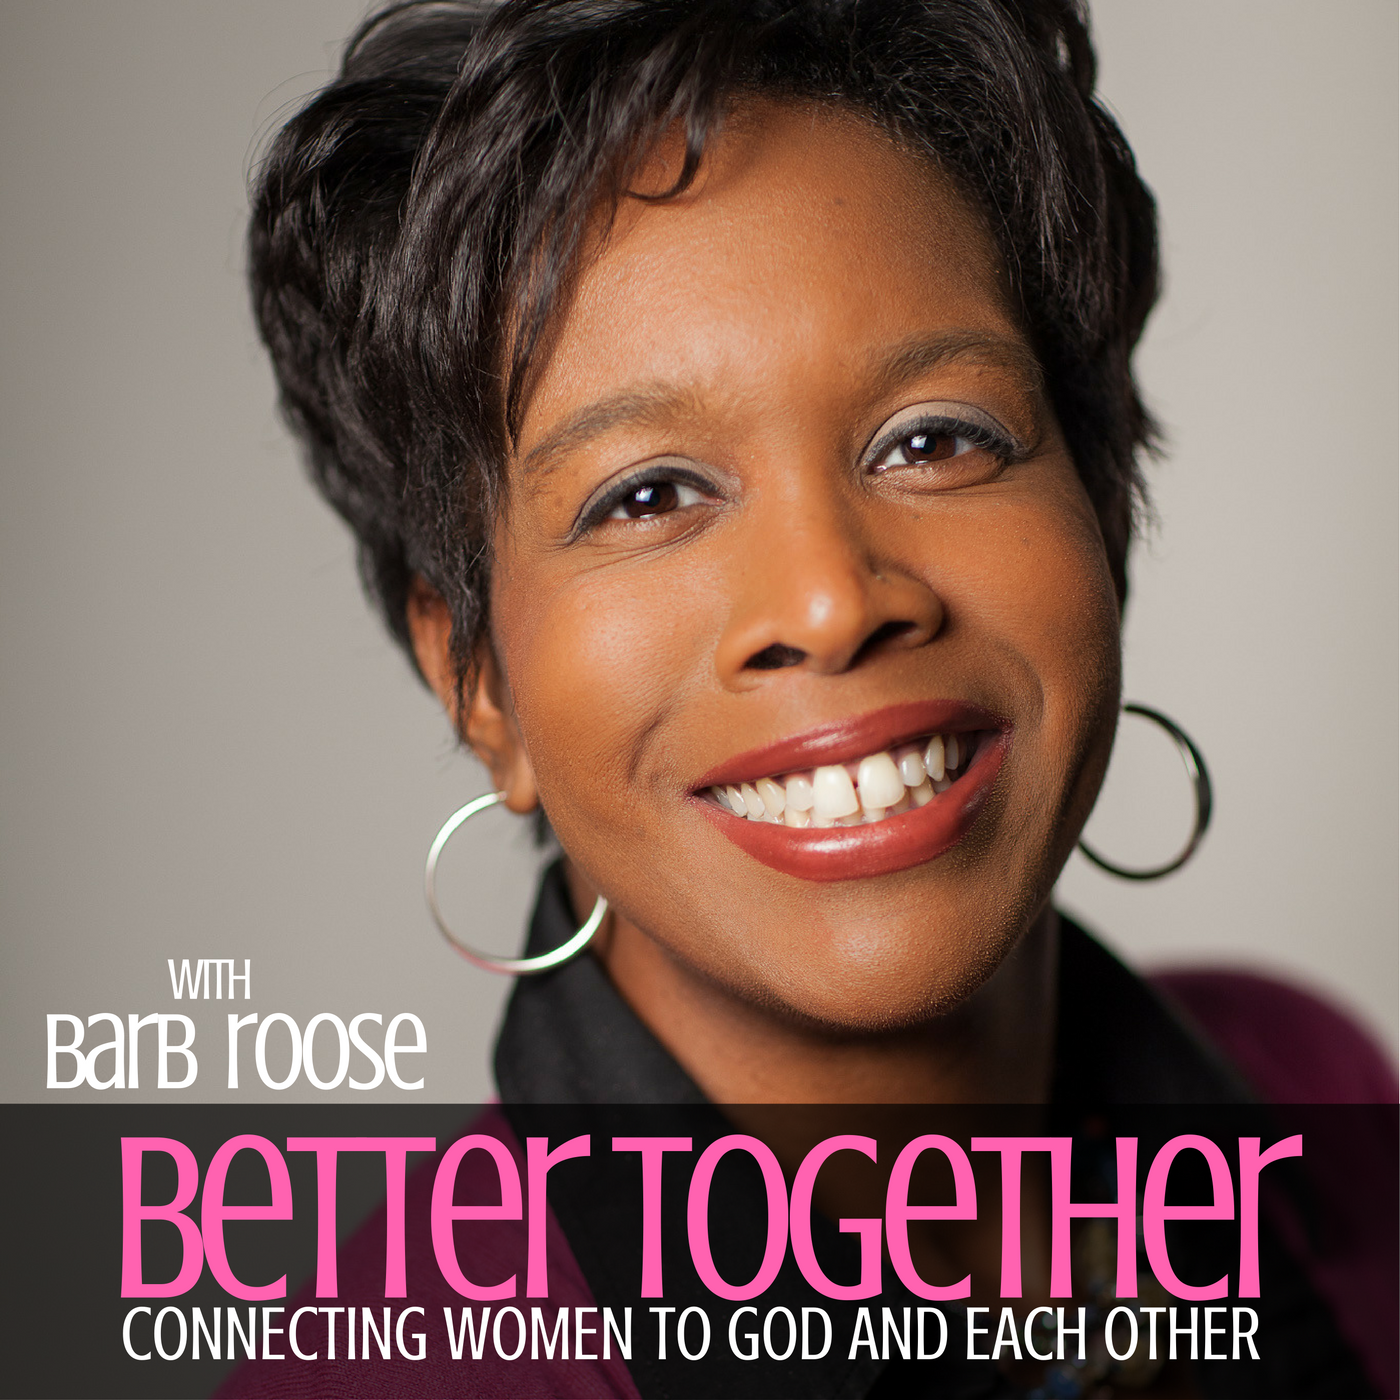 Introducing the Better Together Podcast with Barb Roose